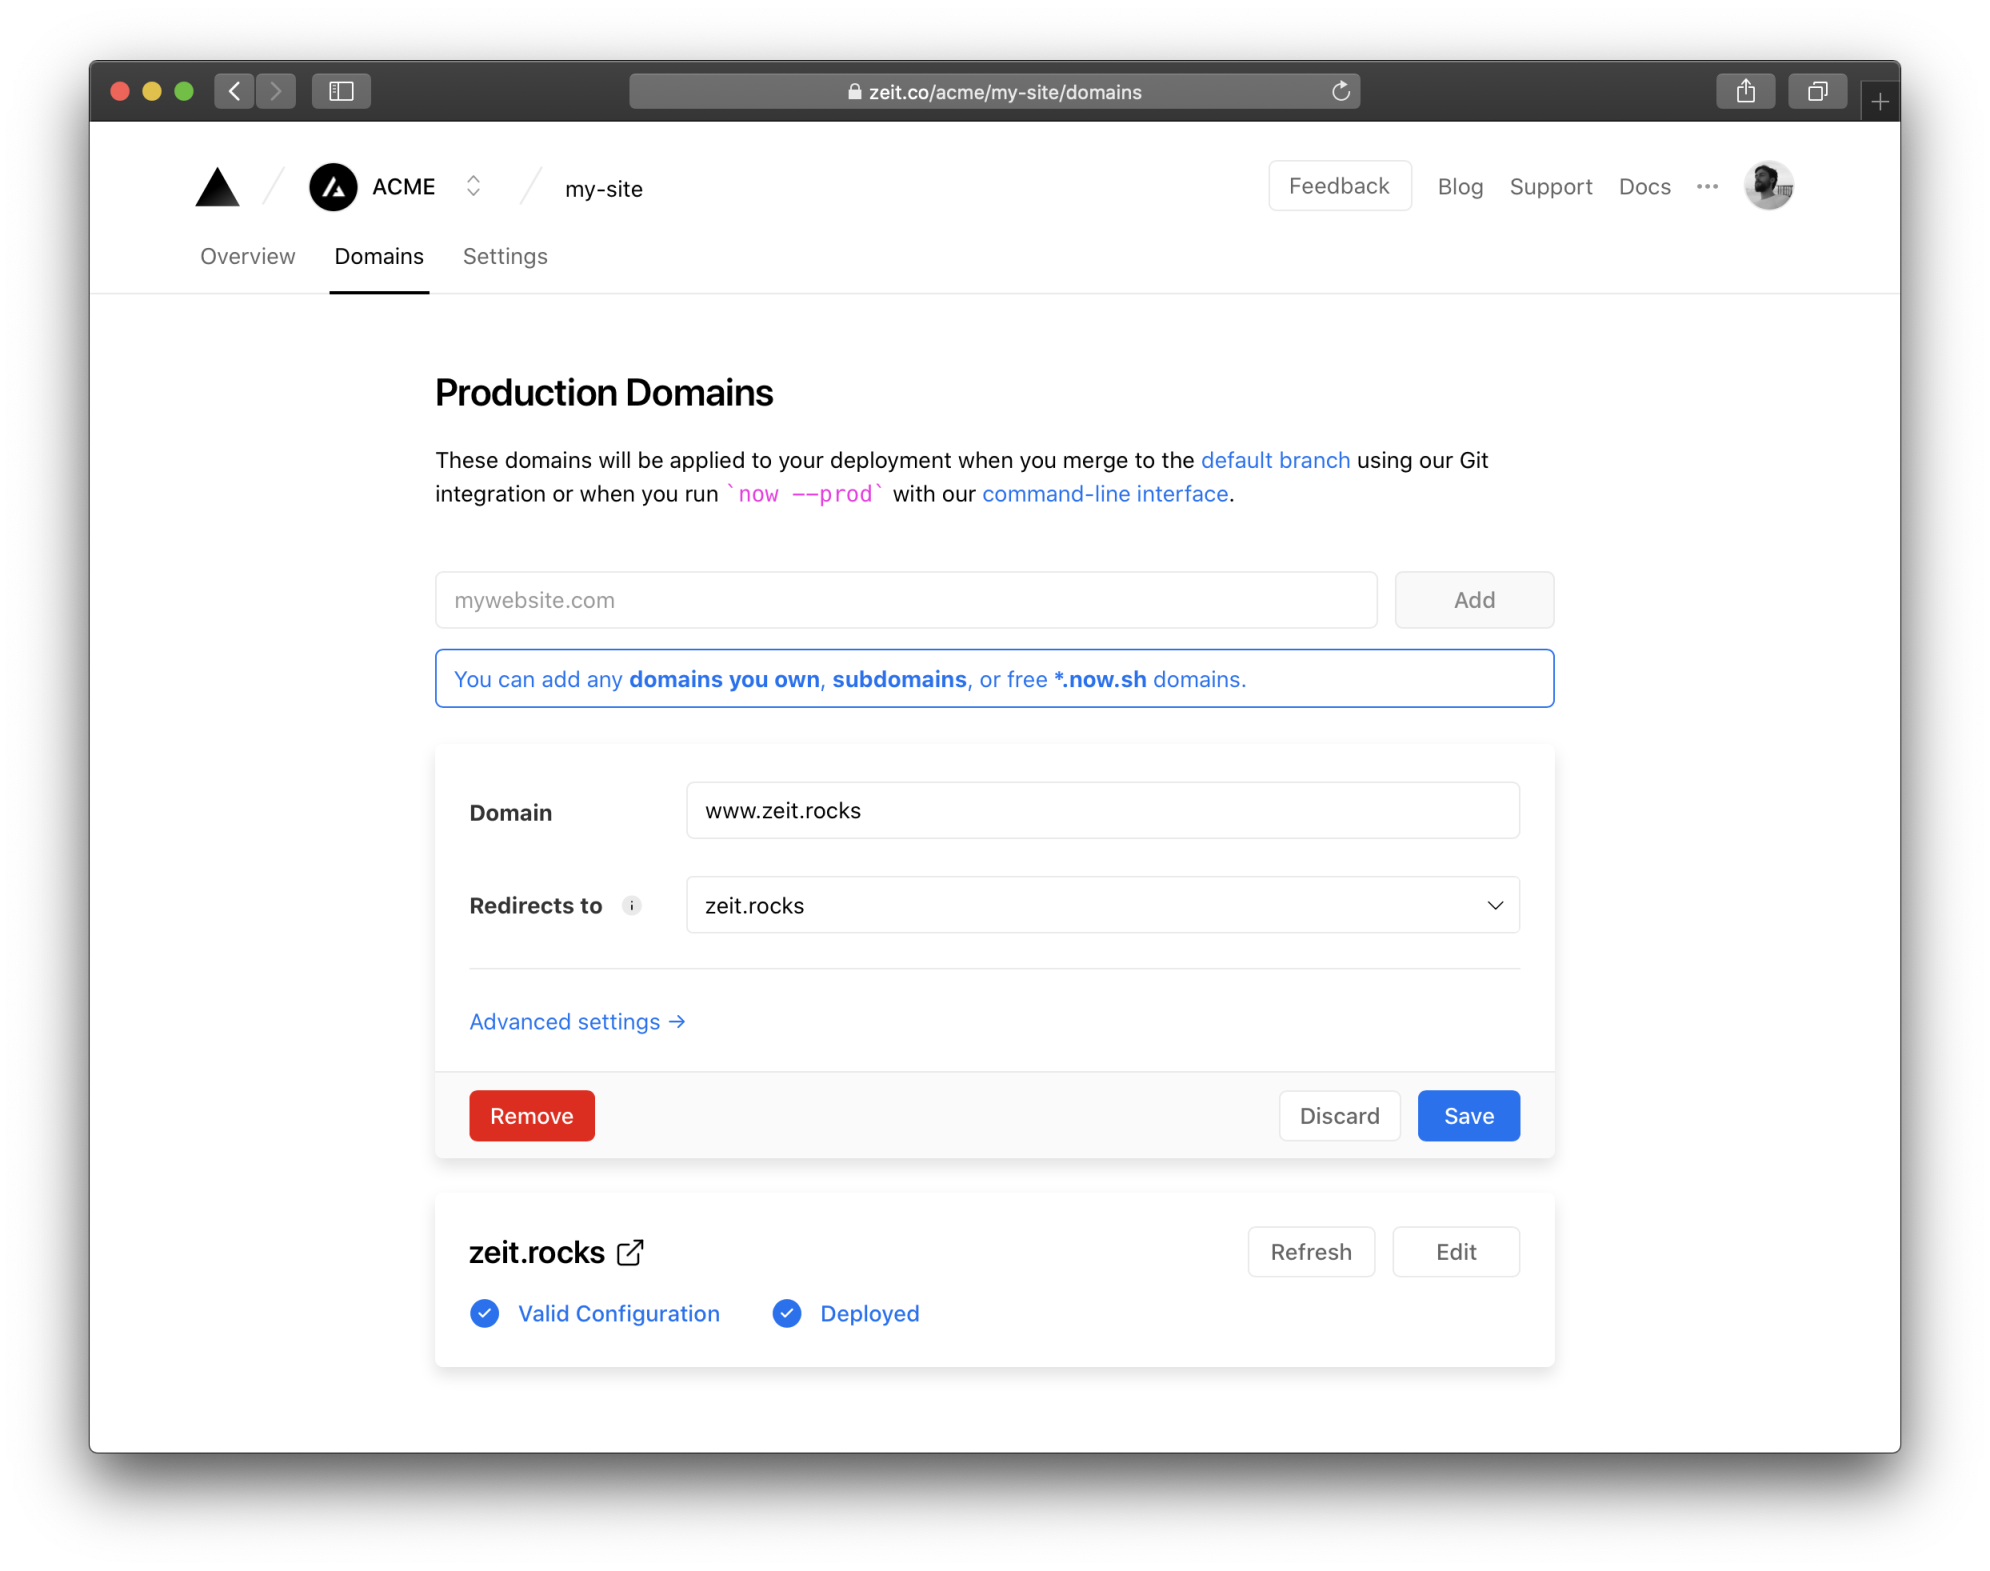 Only domains added to your project can be selected.